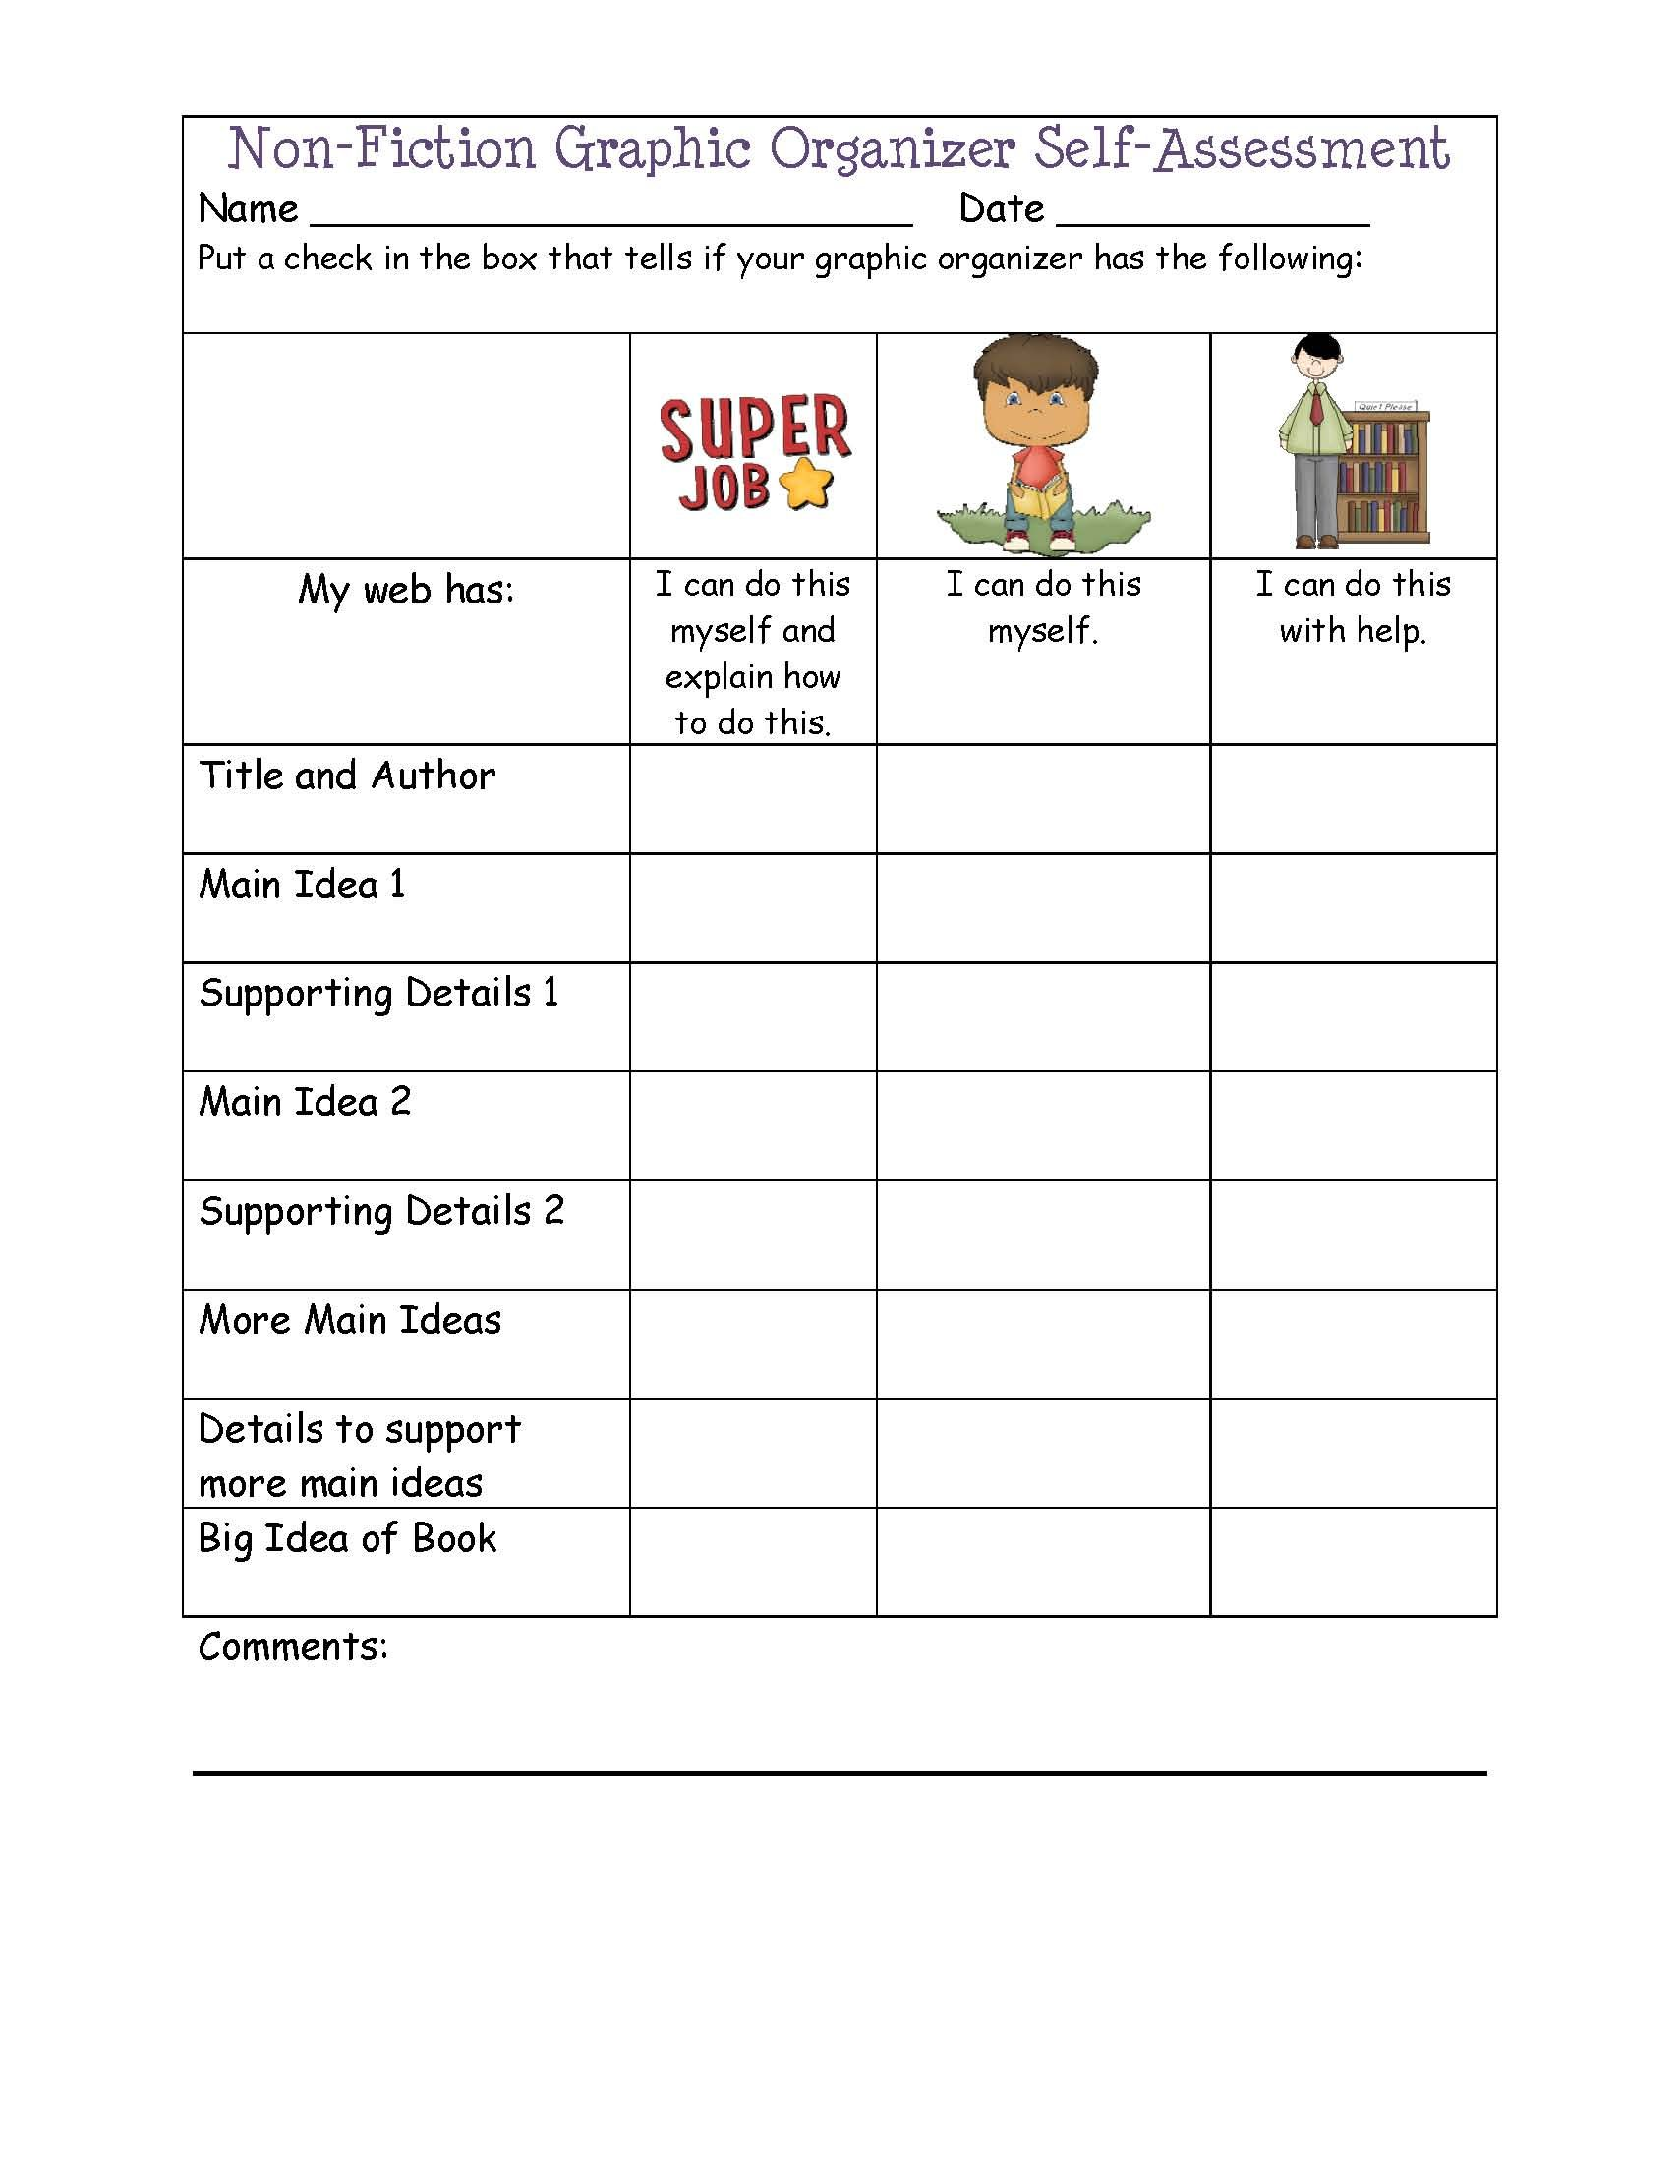 Non Fiction Graphic Organizer Student Self Evaluation